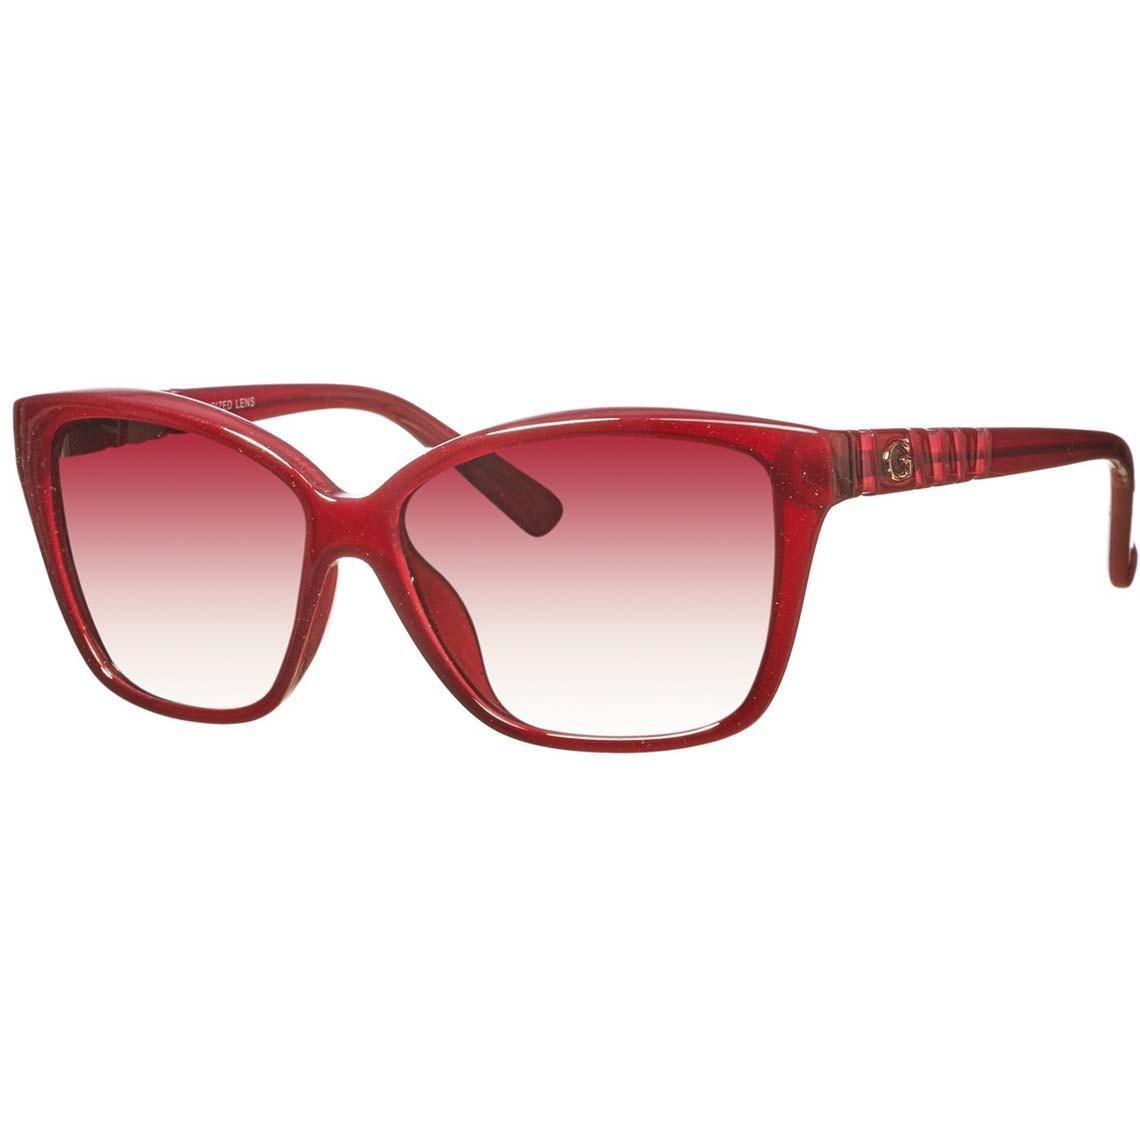 GUESS Women Red Sunglasses GUP2015 BU-52 New w/ Case